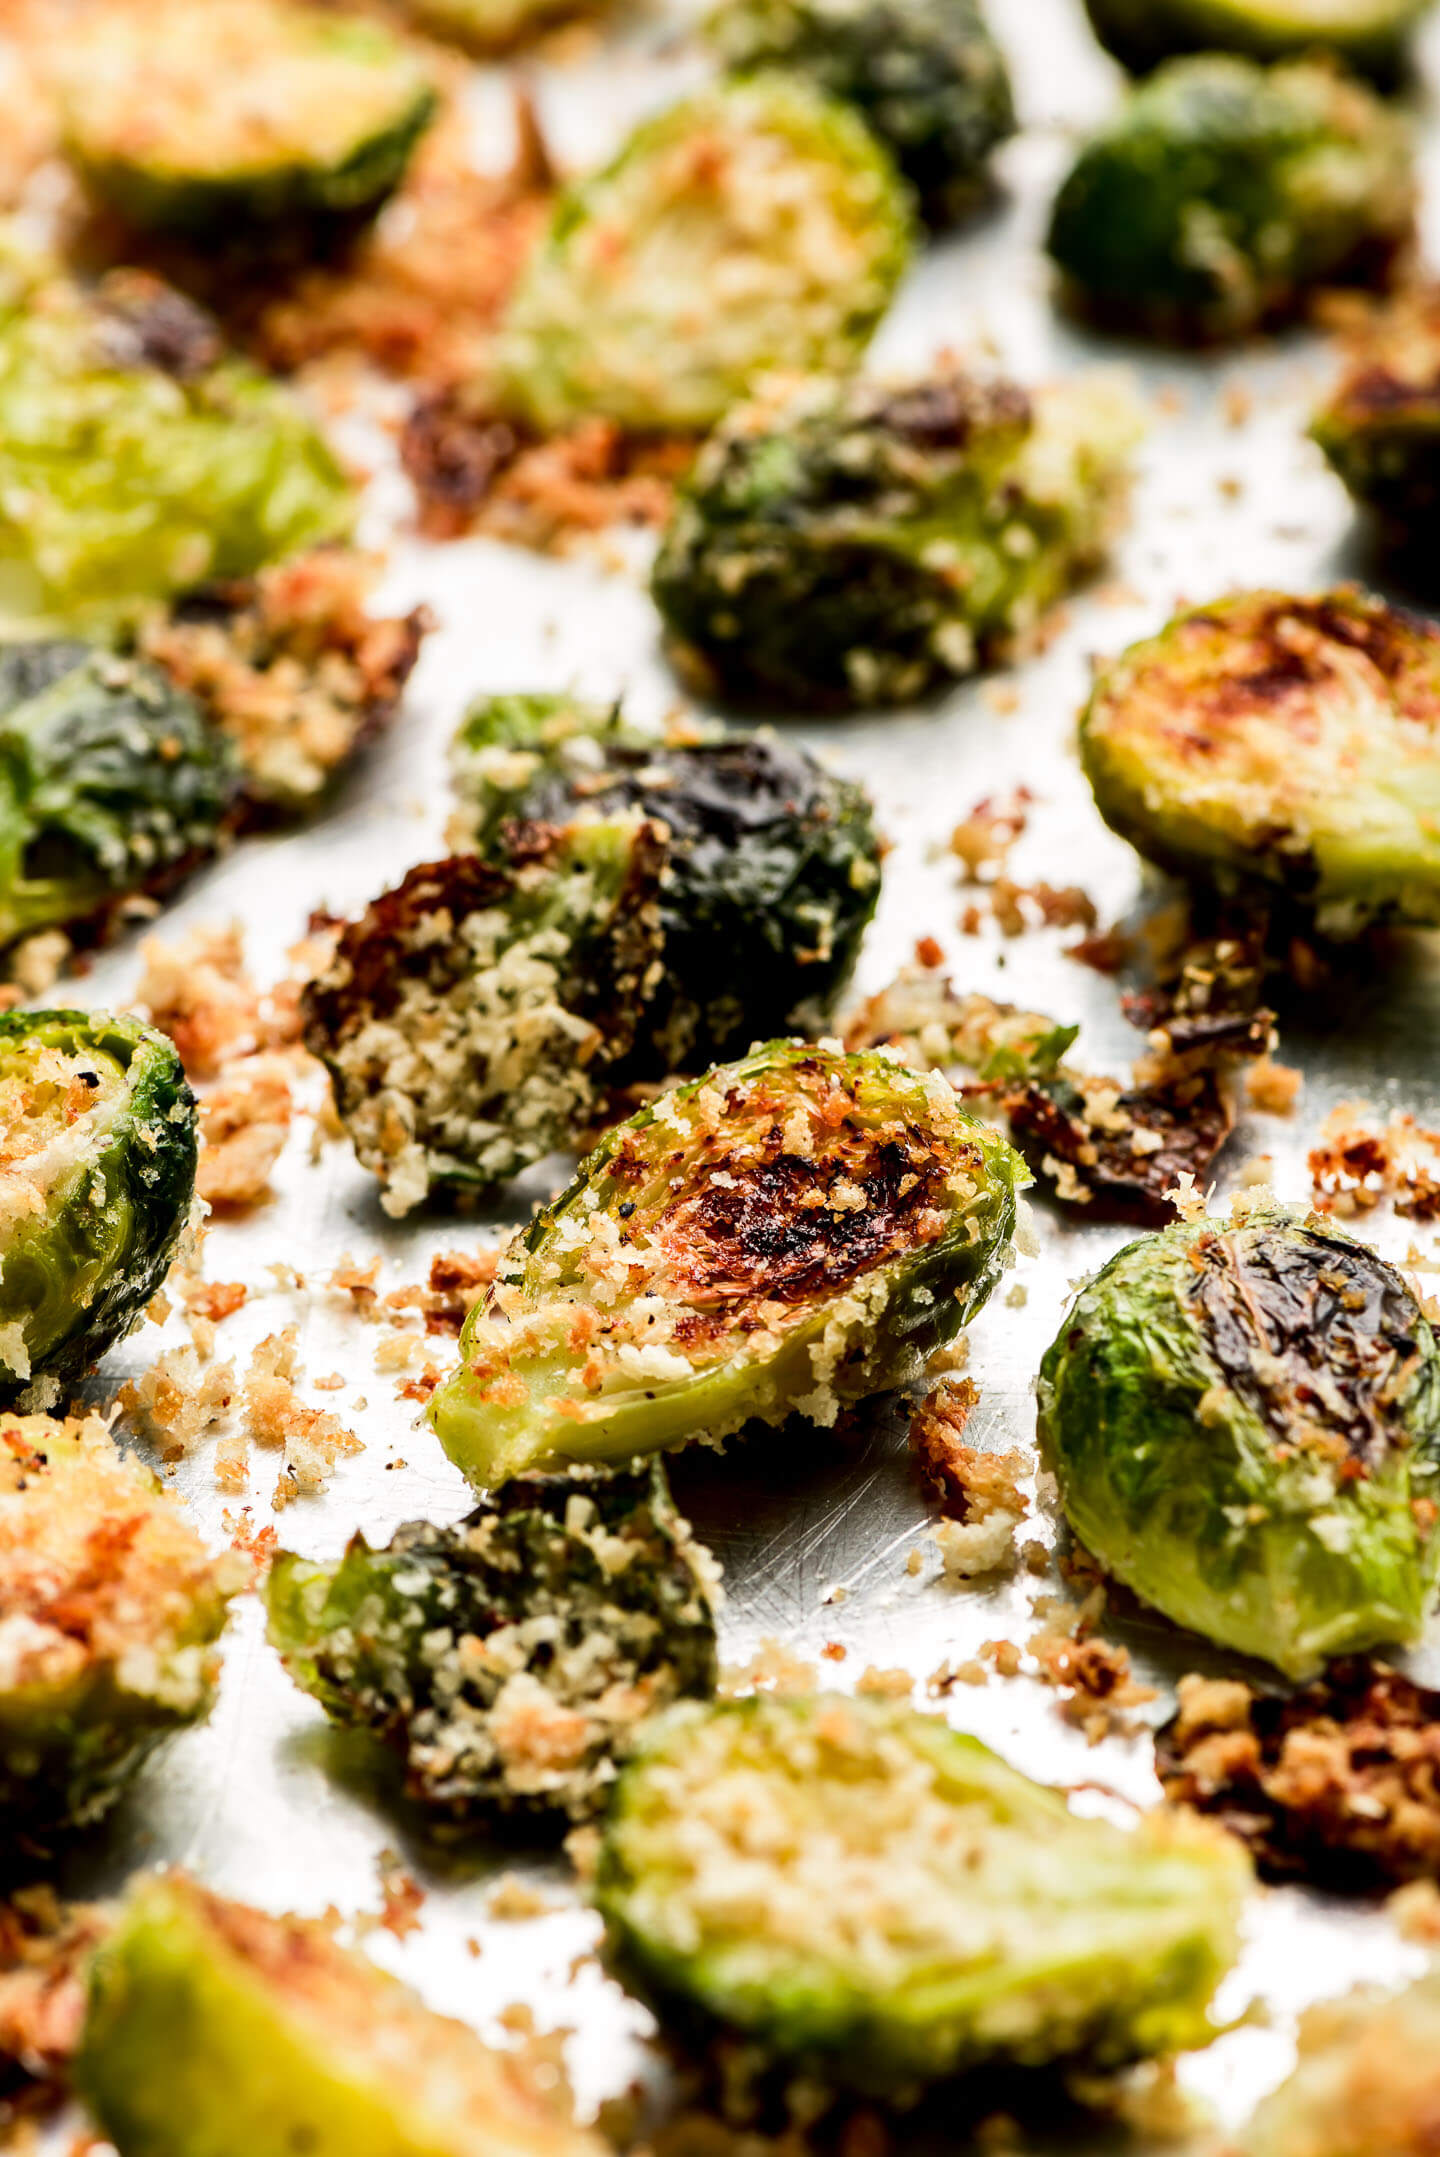 Roasted Brussels Sprouts coated in crispy panko and parmesan on a baking sheet.